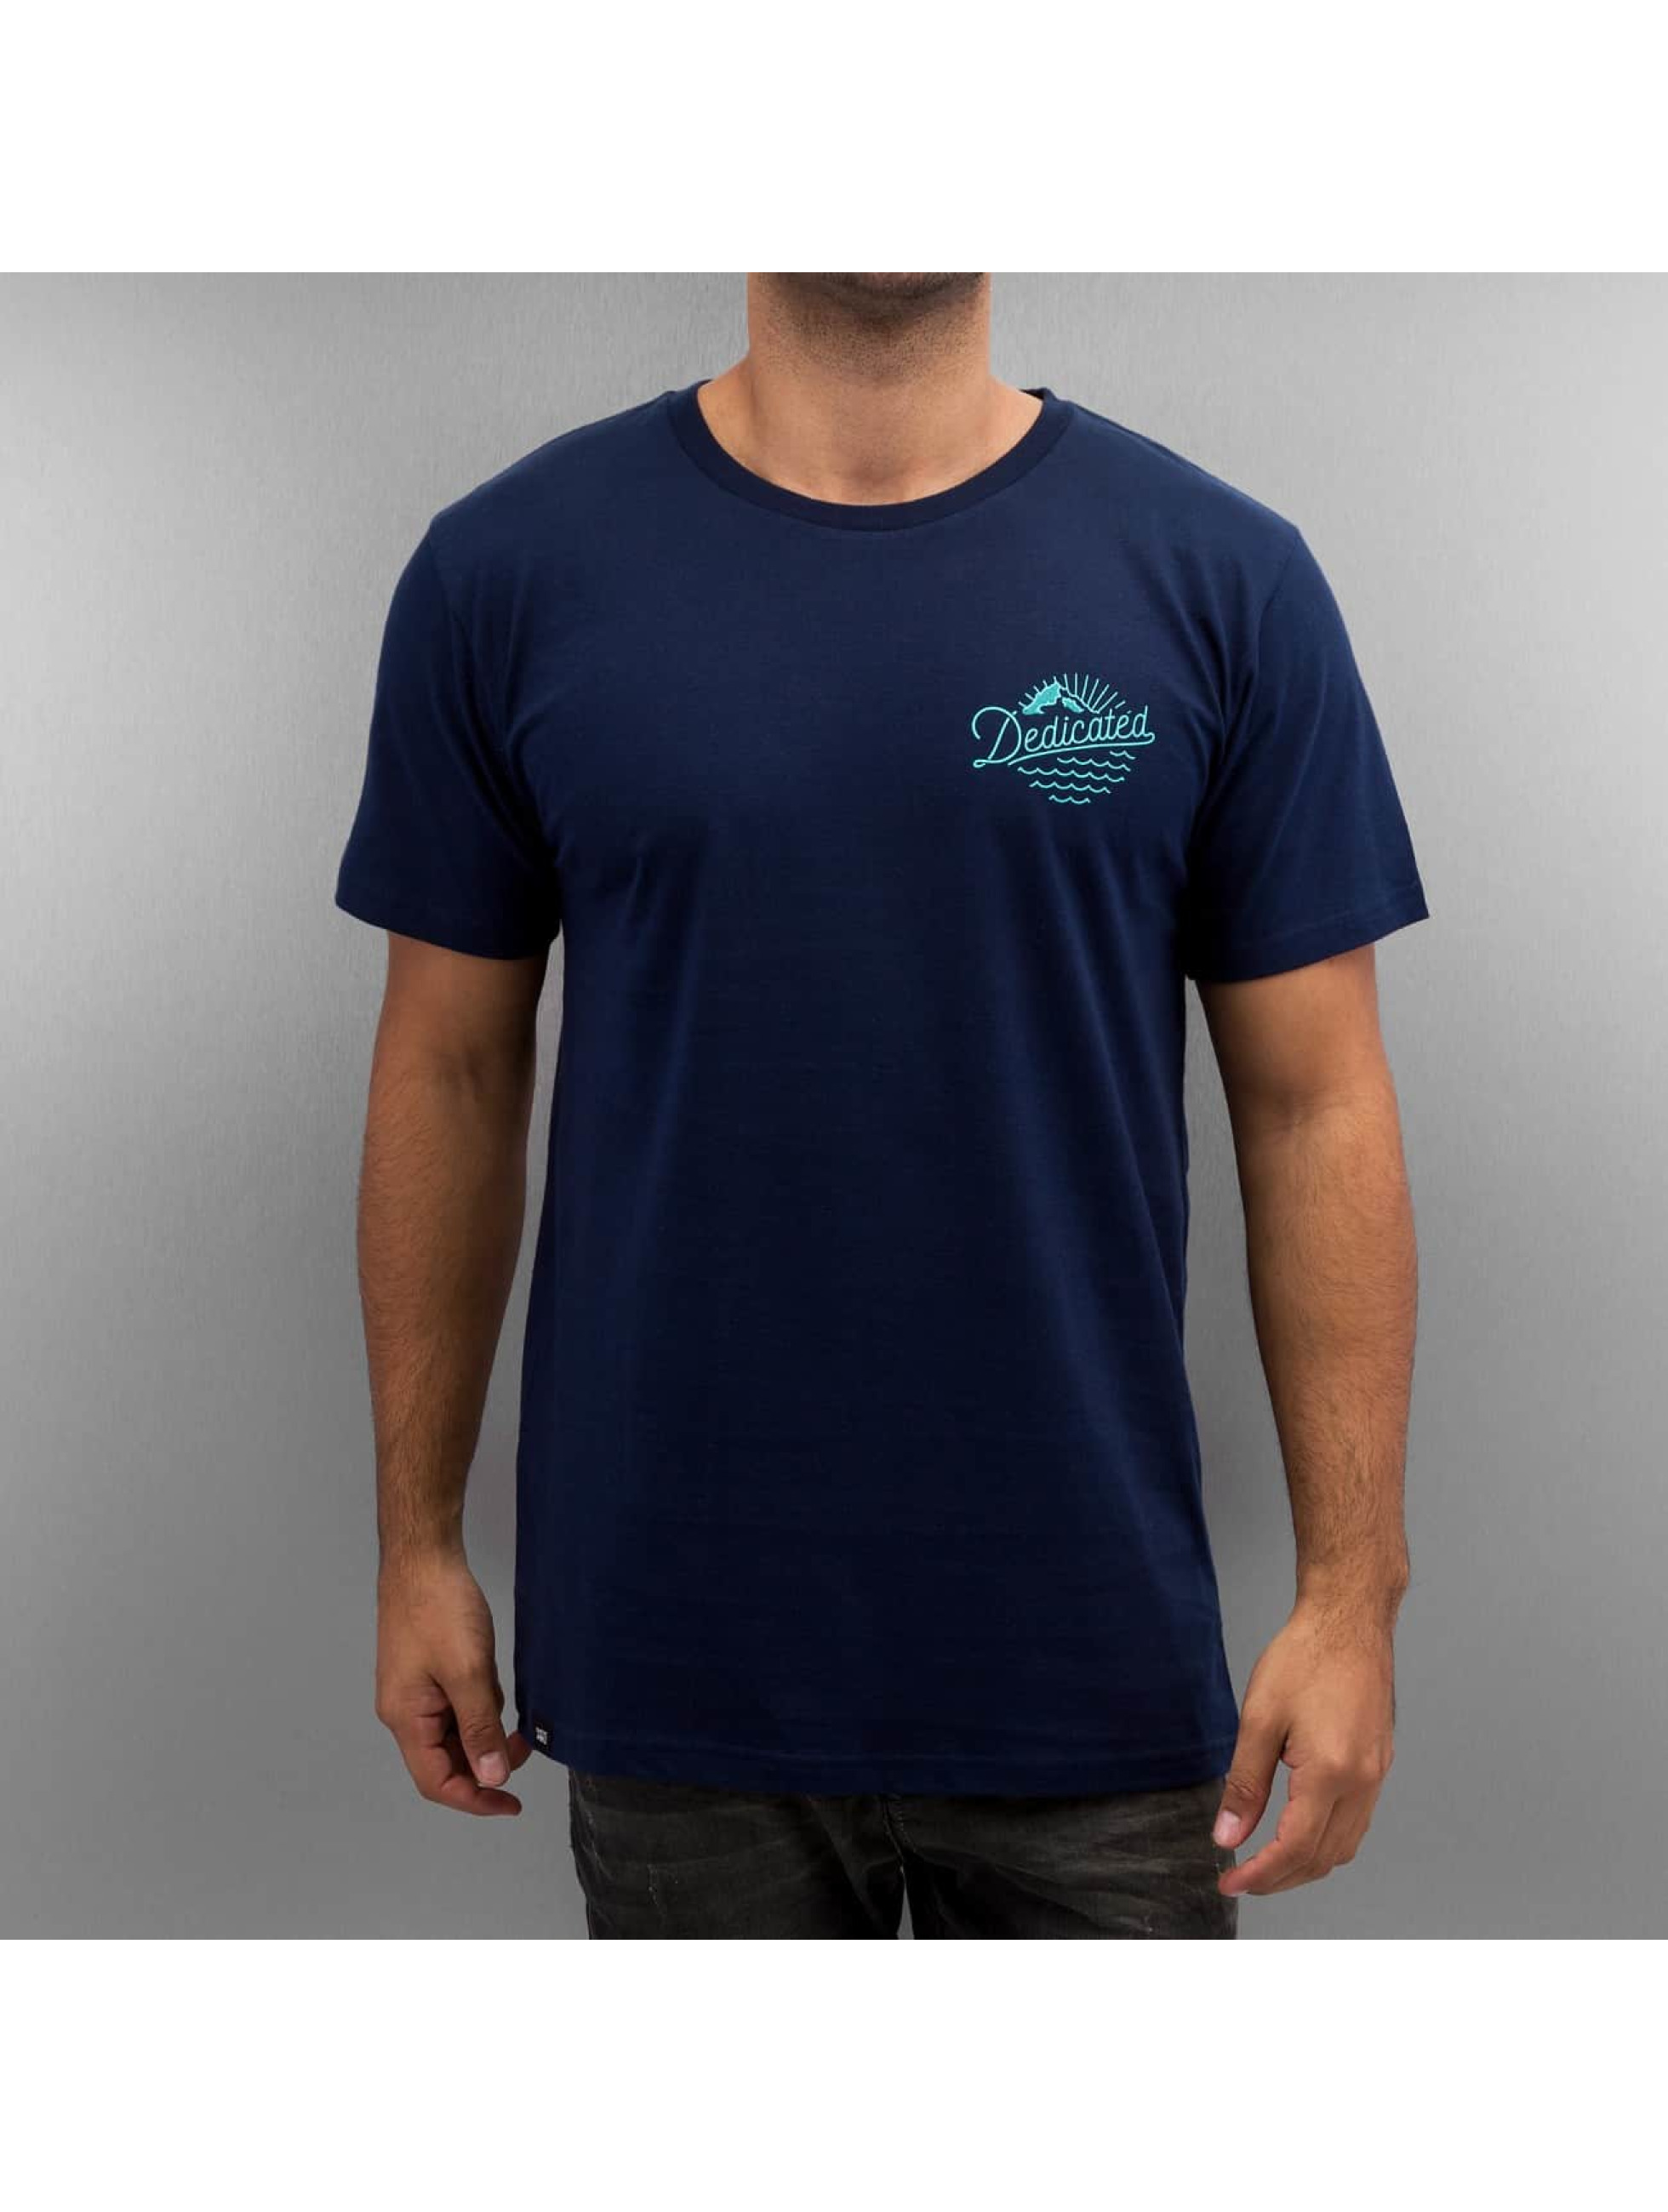 DEDICATED T-Shirt Good Vibes bleu